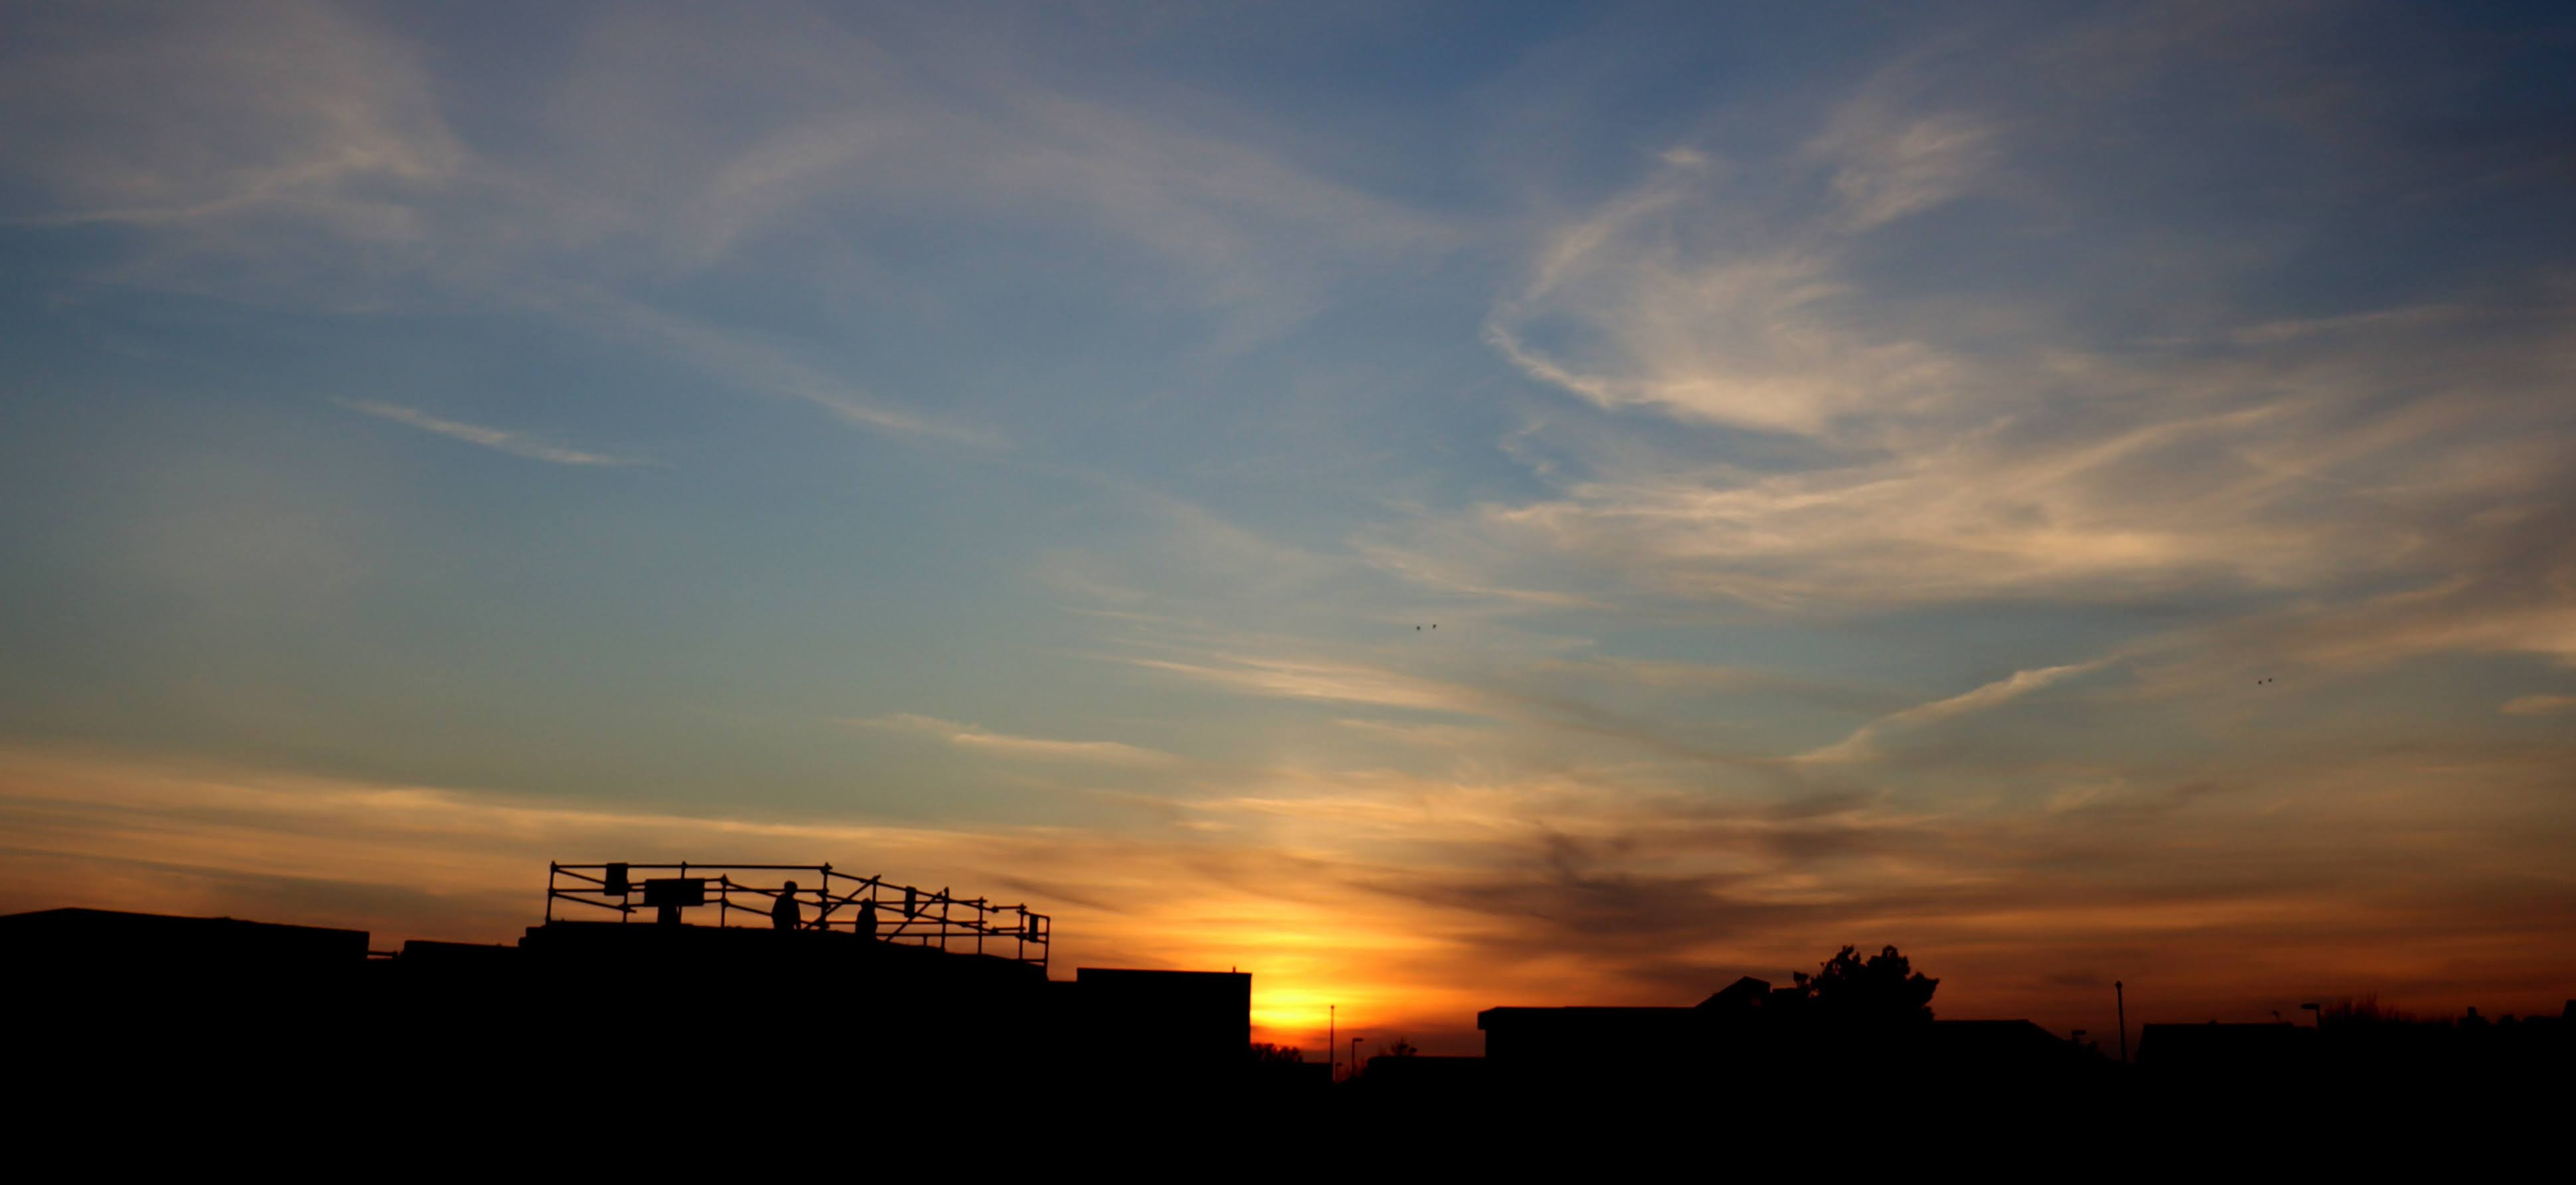 Silhouette of Shoreham fort and rooftops in front of a low red sunset with white clouds above.